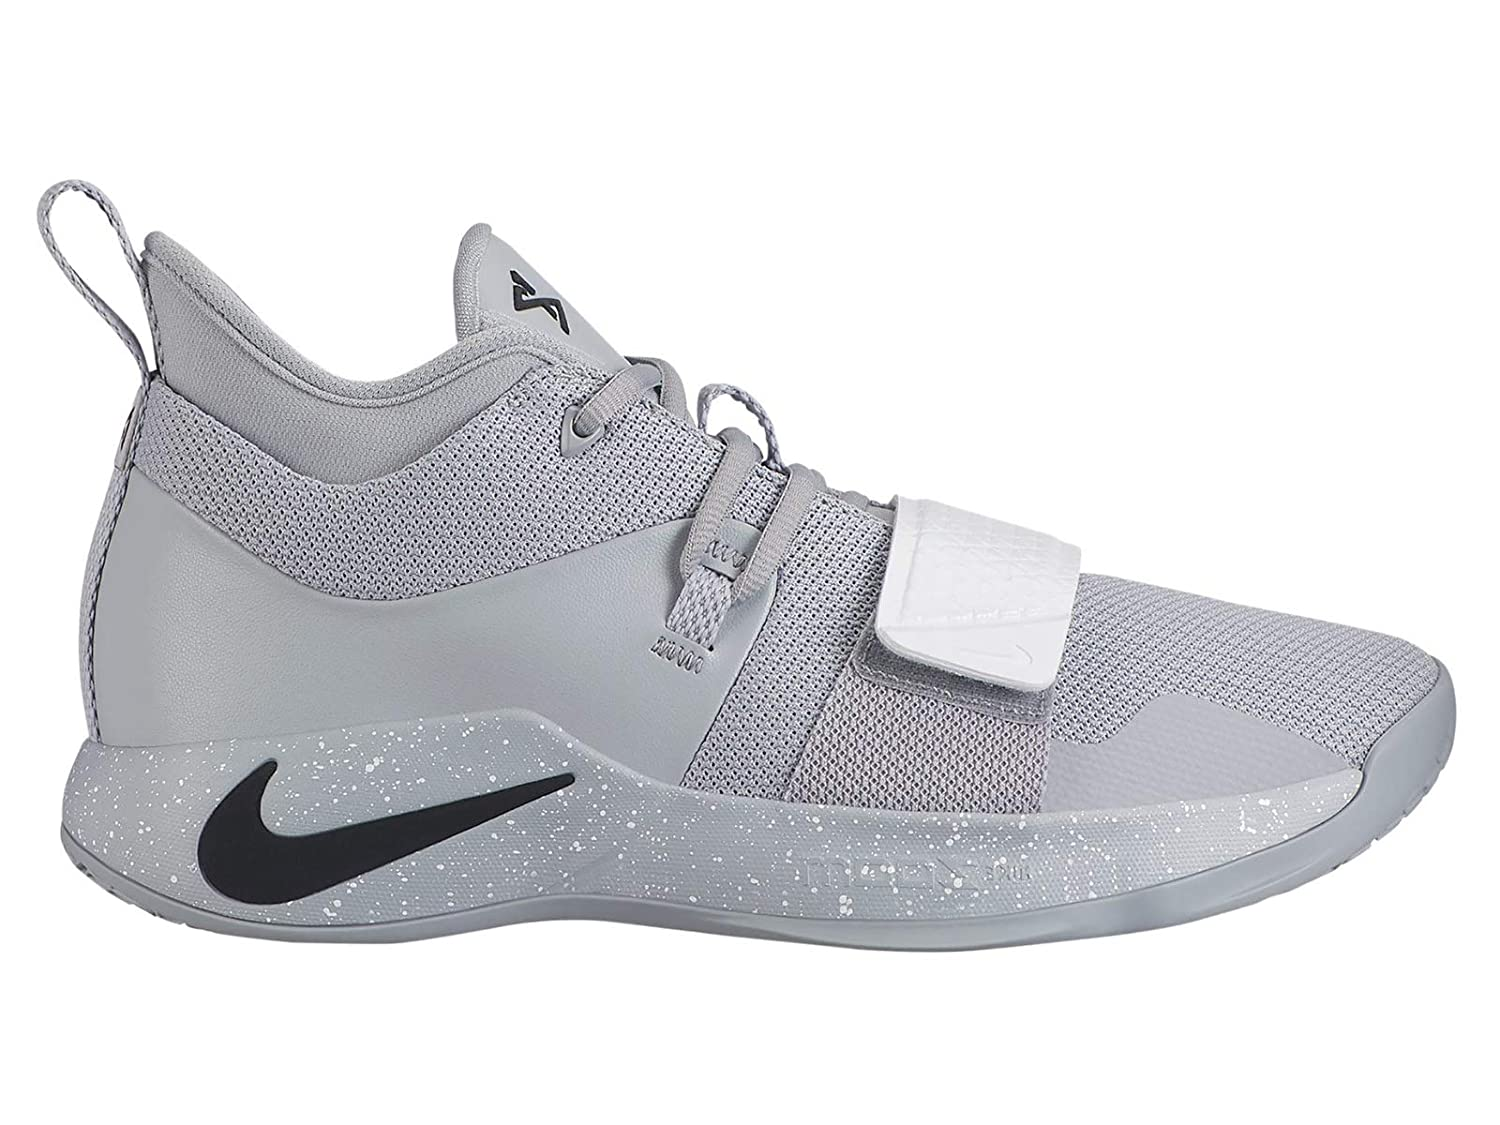 newest 9d2a1 12a06 Nike PG 2.5 - Men's Paul George Nylon Wolf Grey/Black/White Basketball  Shoes 13 D(M) US